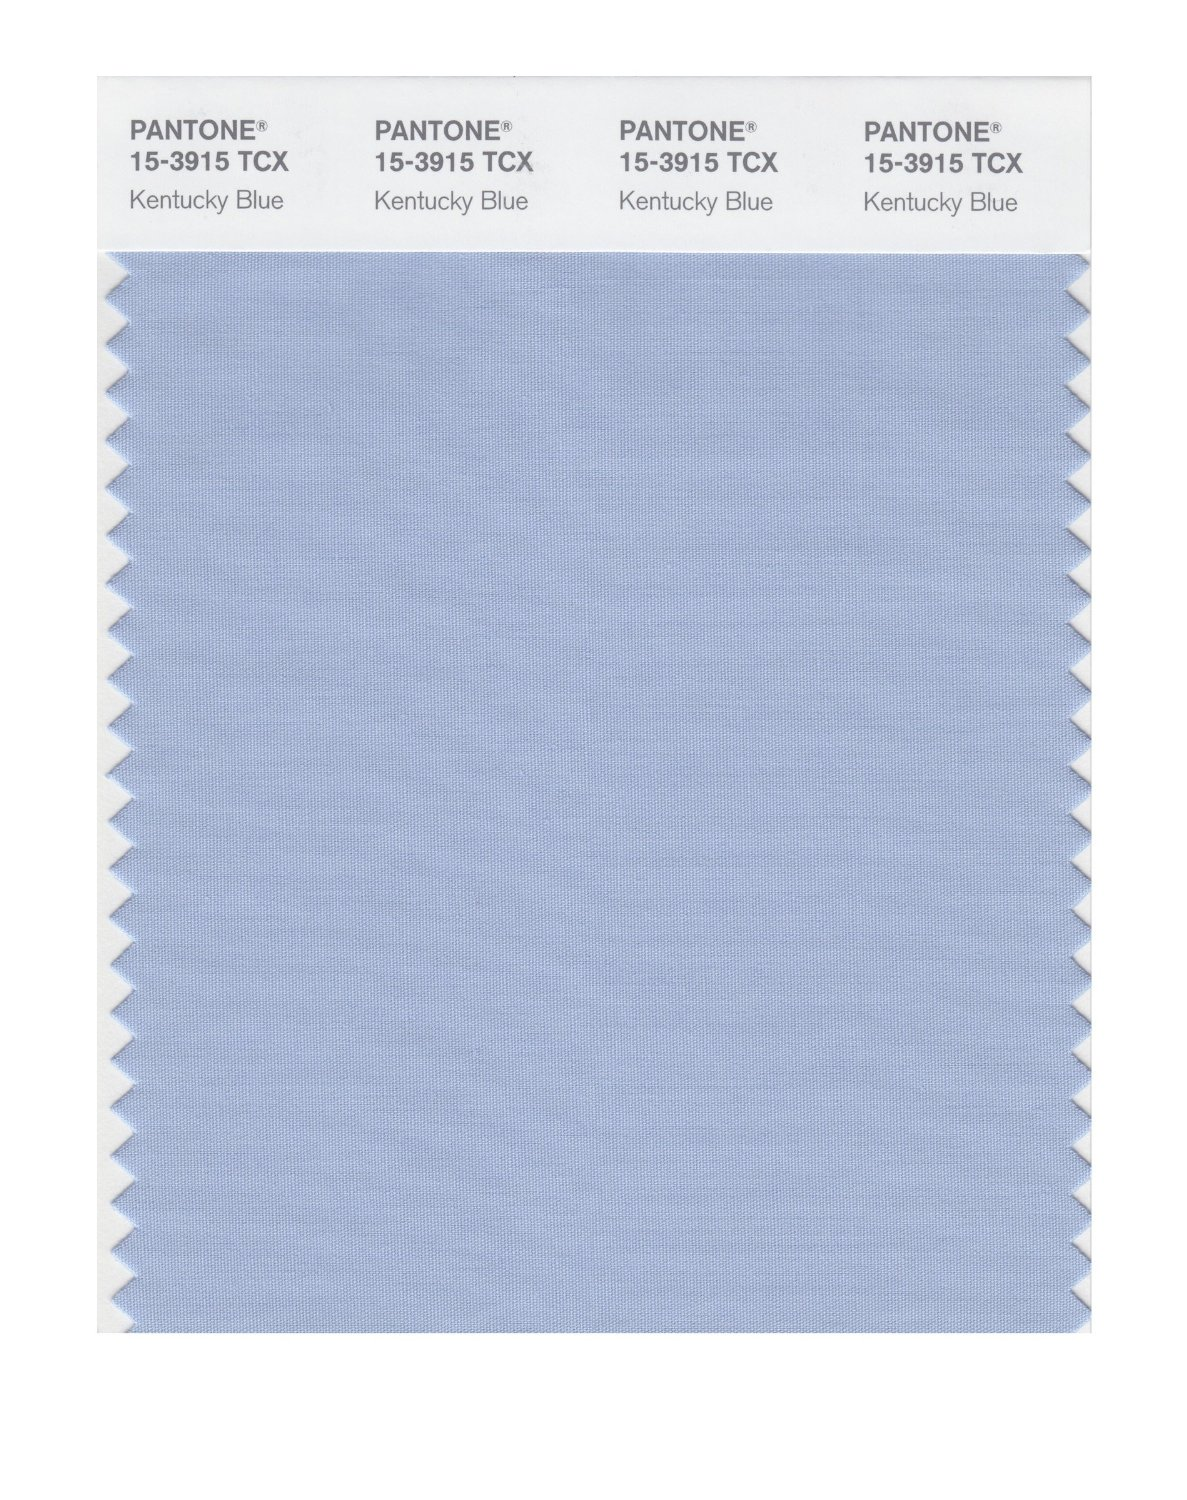 Pantone Smart Swatch 15-3915 Kentucky Blue